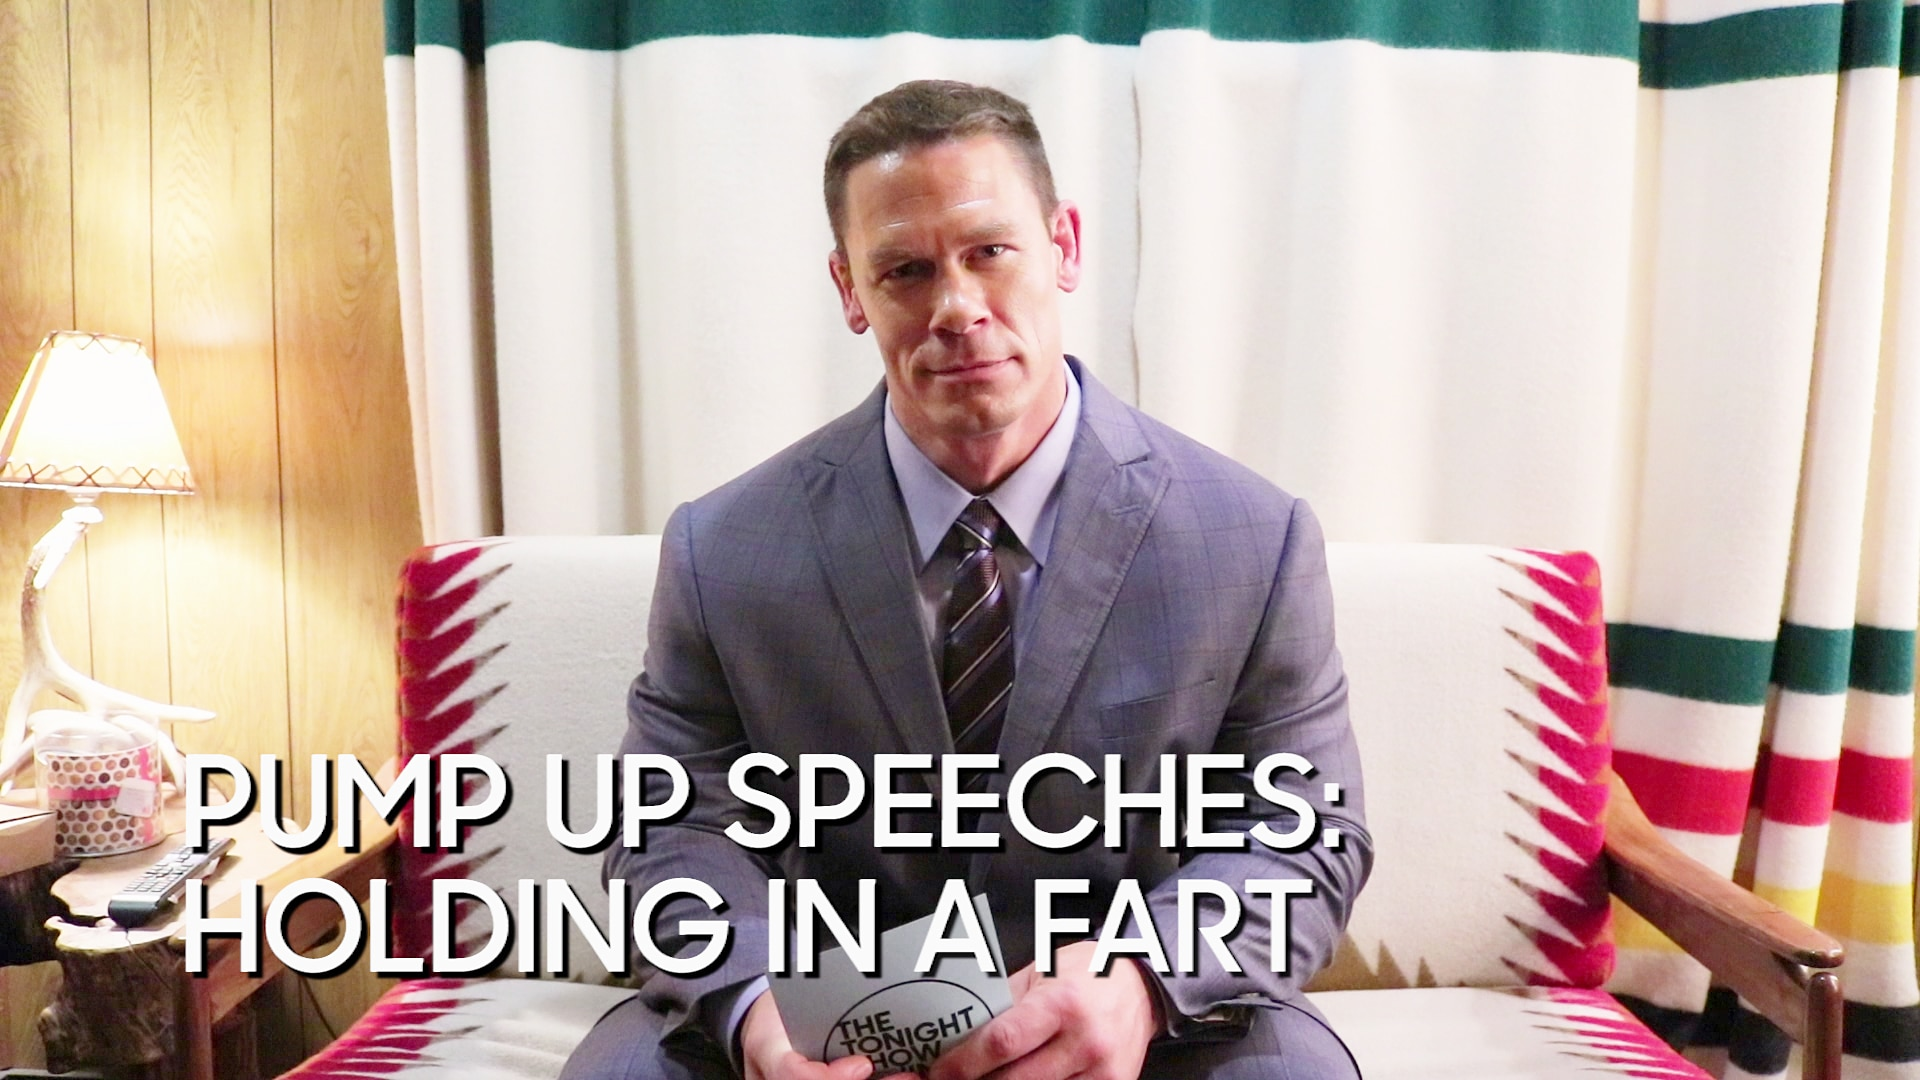 Pump Up Speeches: Holding in a Fart (with John Cena)